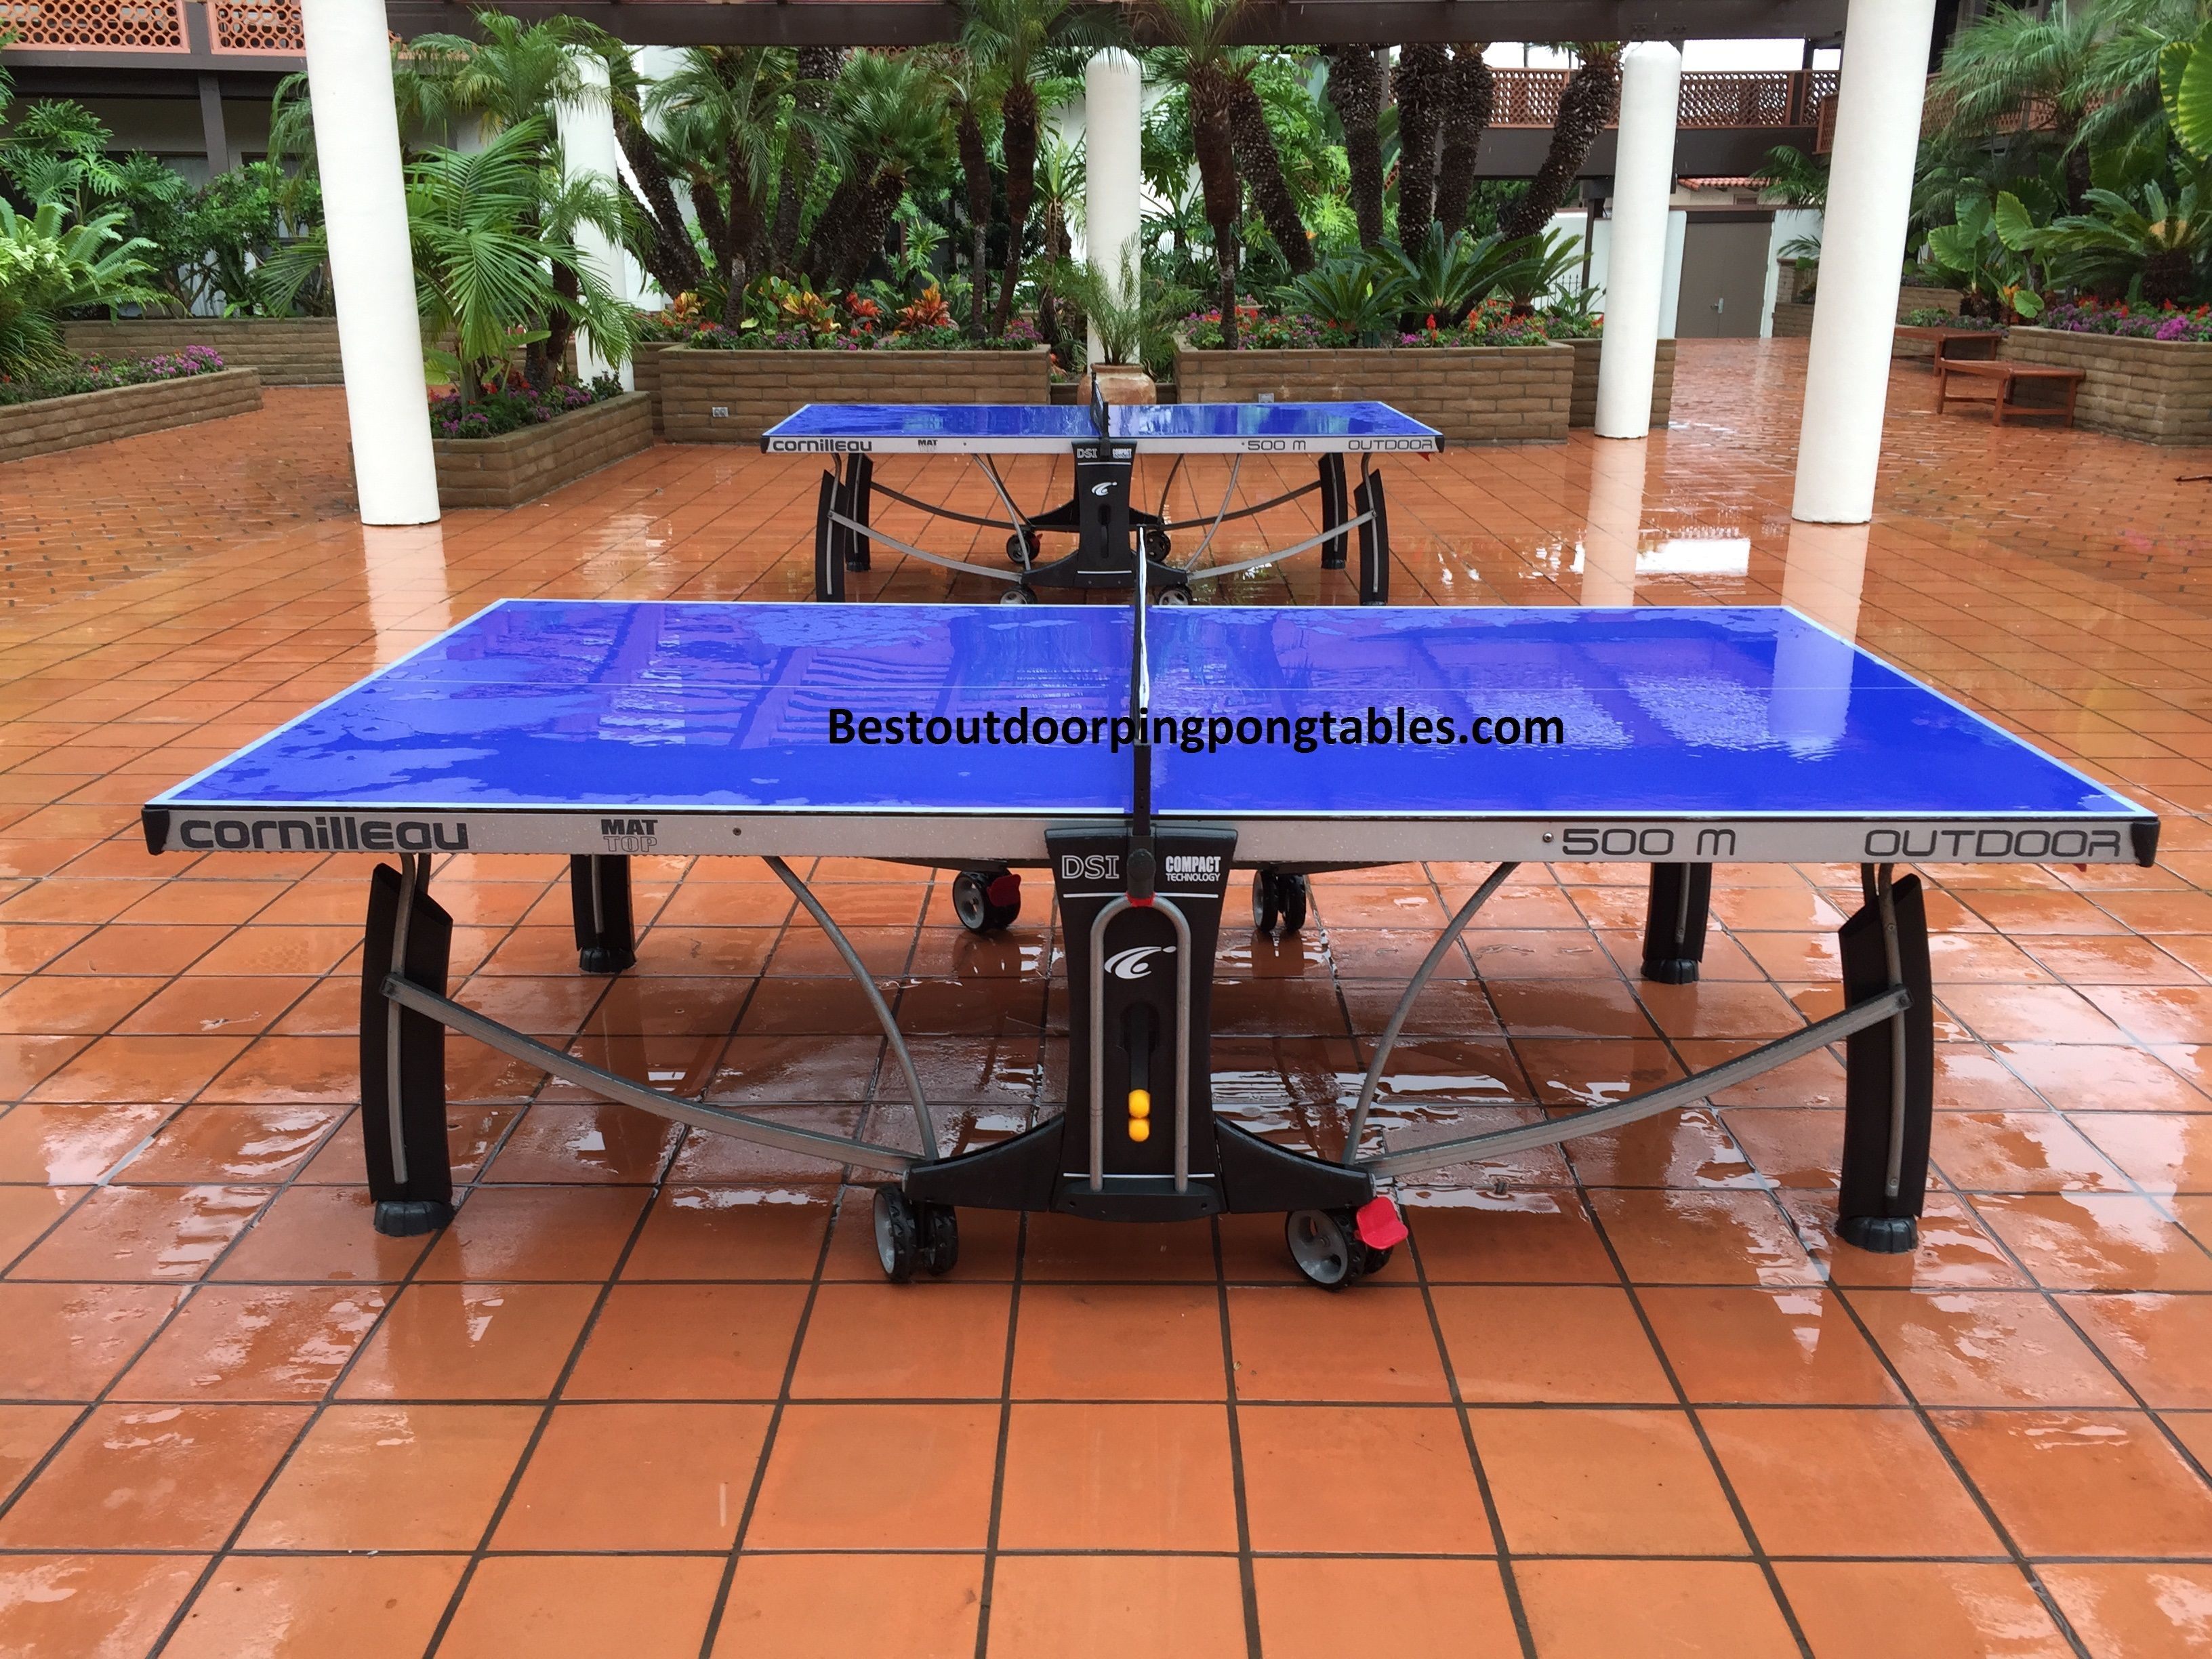 784ceb0313af41 Cornilleau 500M  cornilleau  pingpong Outdoor Table Tennis Table, Outdoor  Tables, Sports,